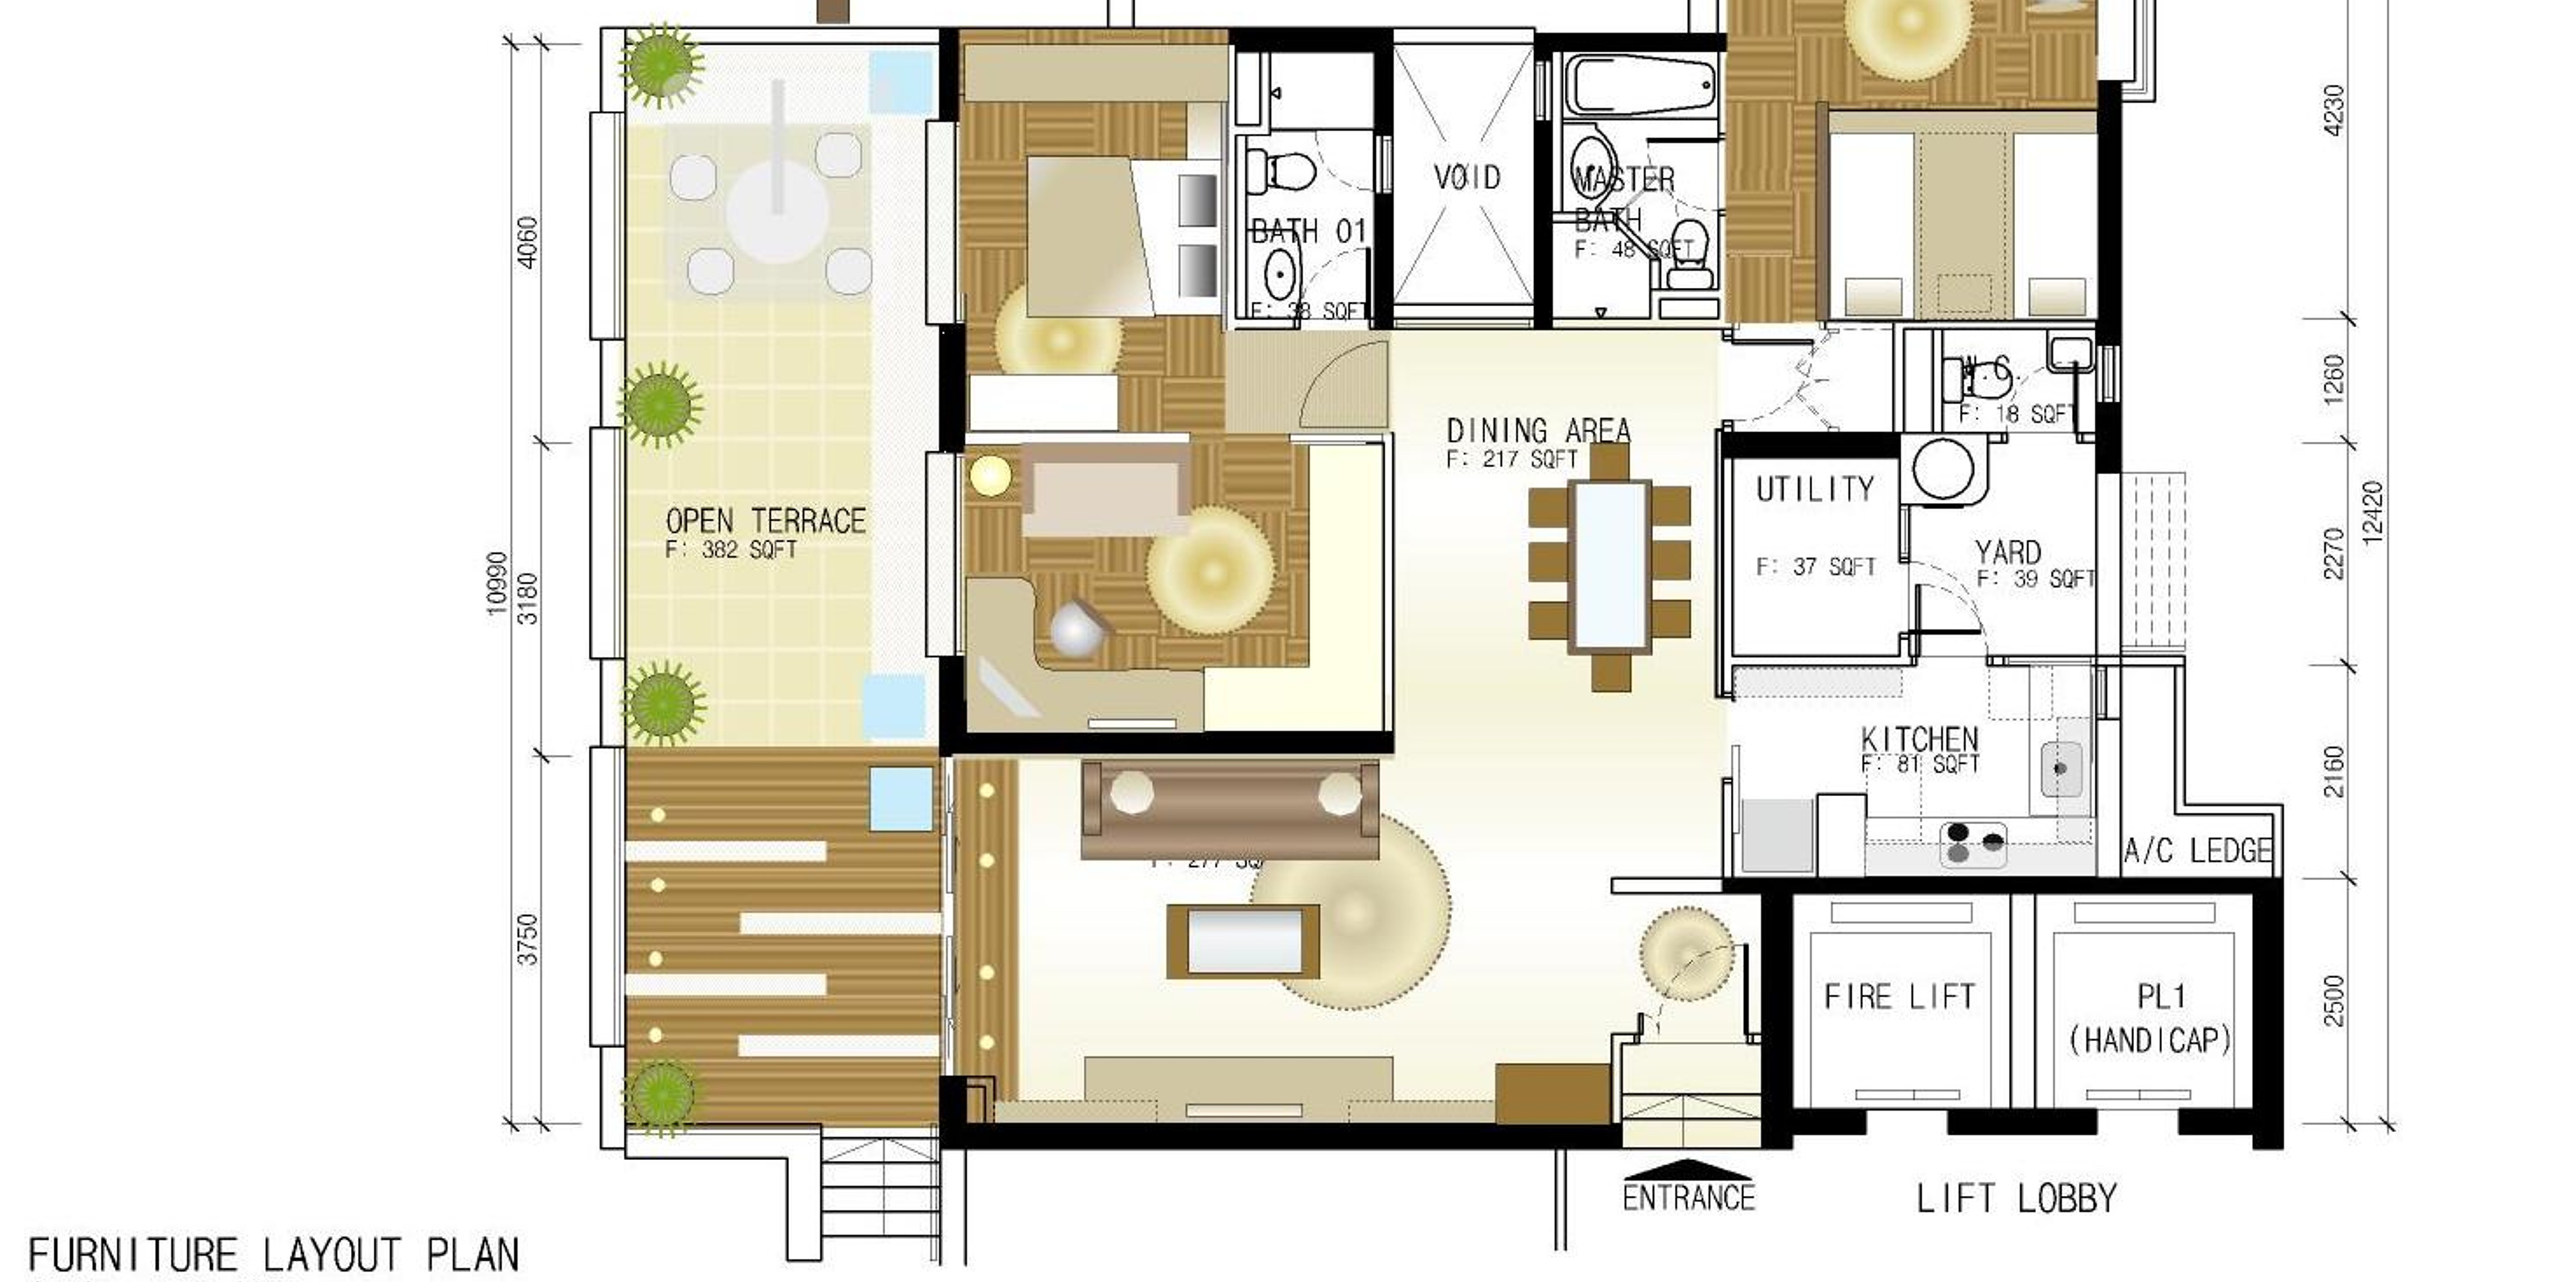 Office Plans Modern Drawing Office Layout Plan At Getdrawings Free For